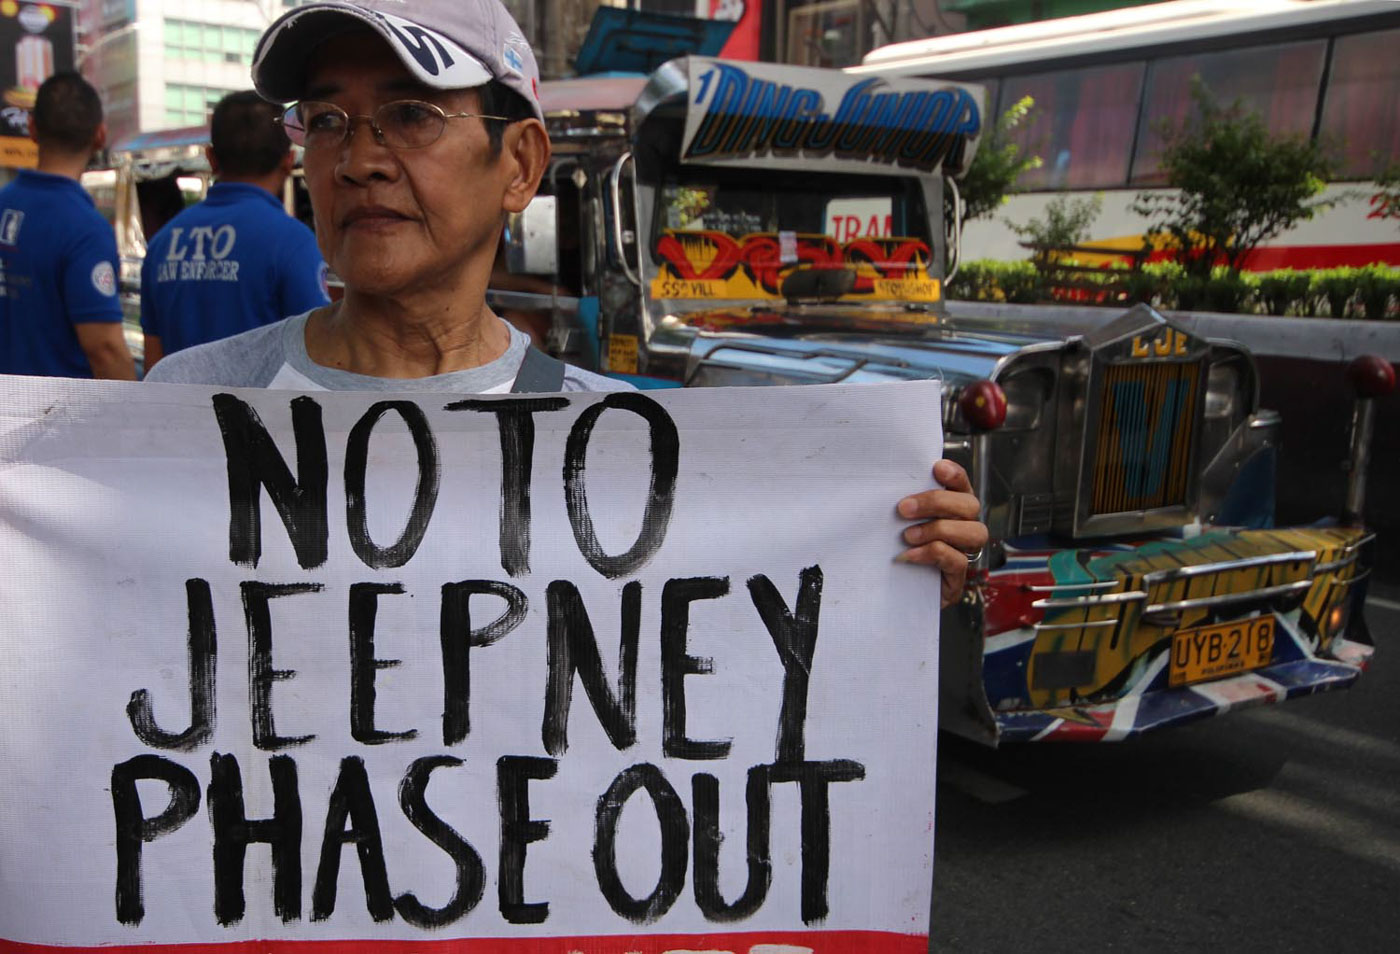 JEEPNEY PHASE OUT? On its second day of protest, members belonging to transport group PISTON and labor group KMU hold a protest rally against the modernization and phaseout of PUJ, along Aurora Blvd. in Cubao, Quezon City on Tuesday. Photo by Darren Langit/Rappler